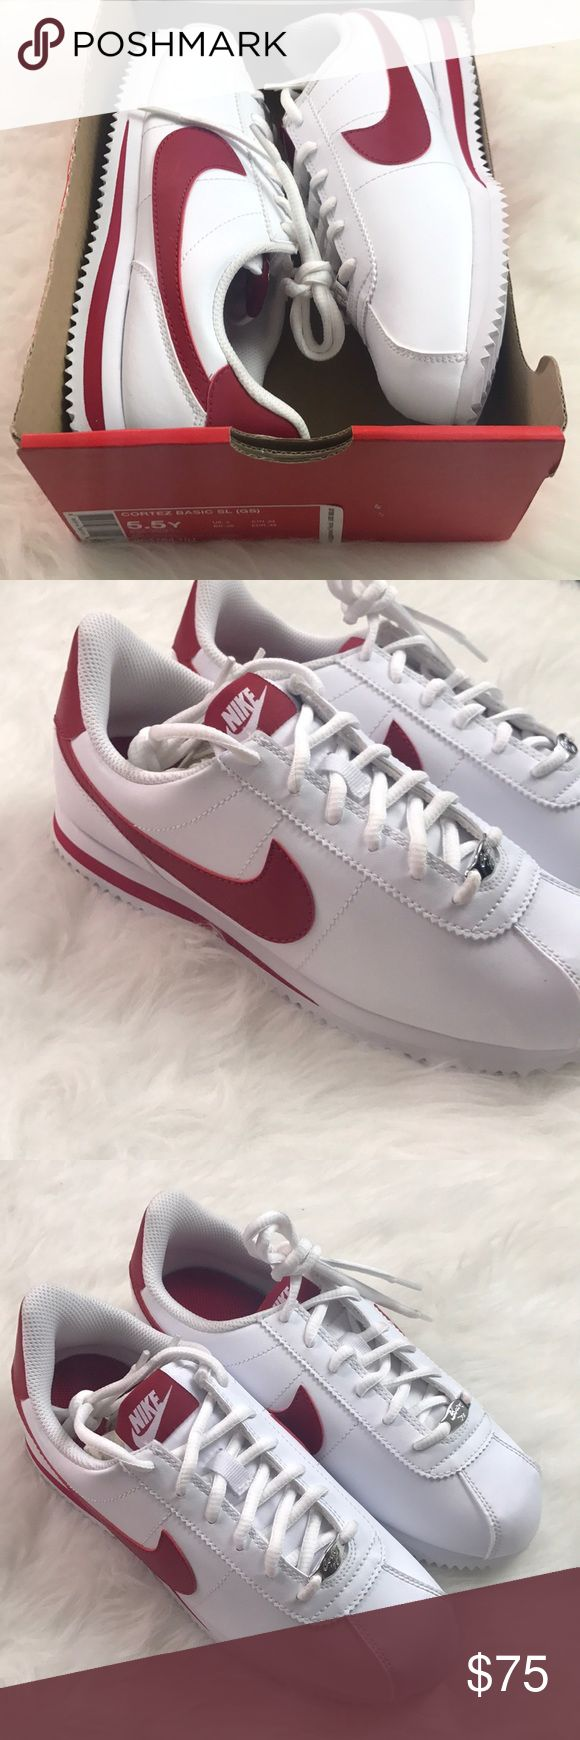 Nike Cortez Shoes NWT Red White 5.5Y Brand New Size 5.5Y Red and White Nike Shoes Nike Shoes Sneakers